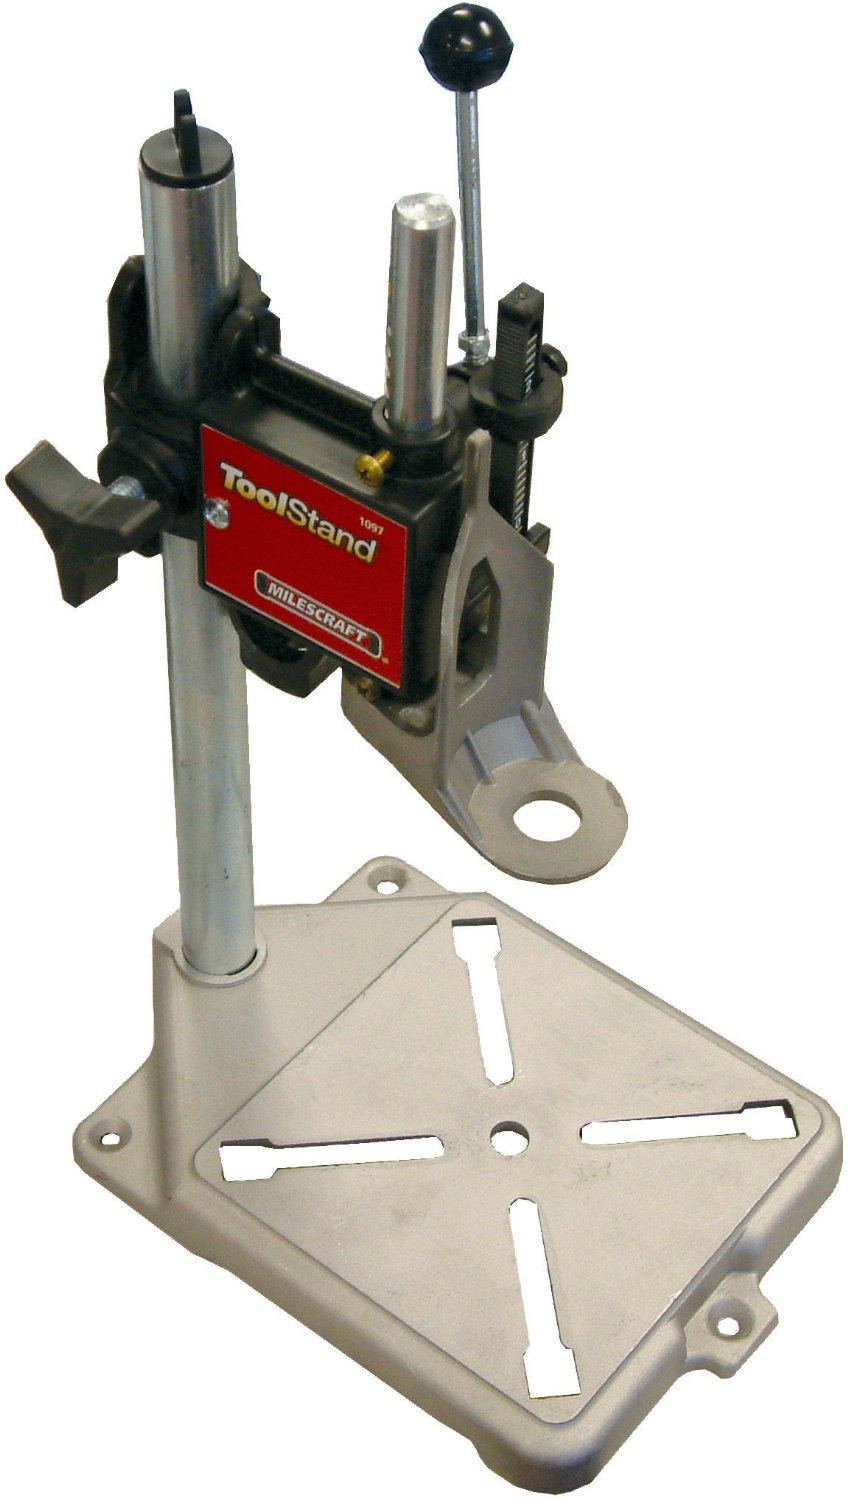 Milescraft 1097 Tool Stand Drill Press Complete Review